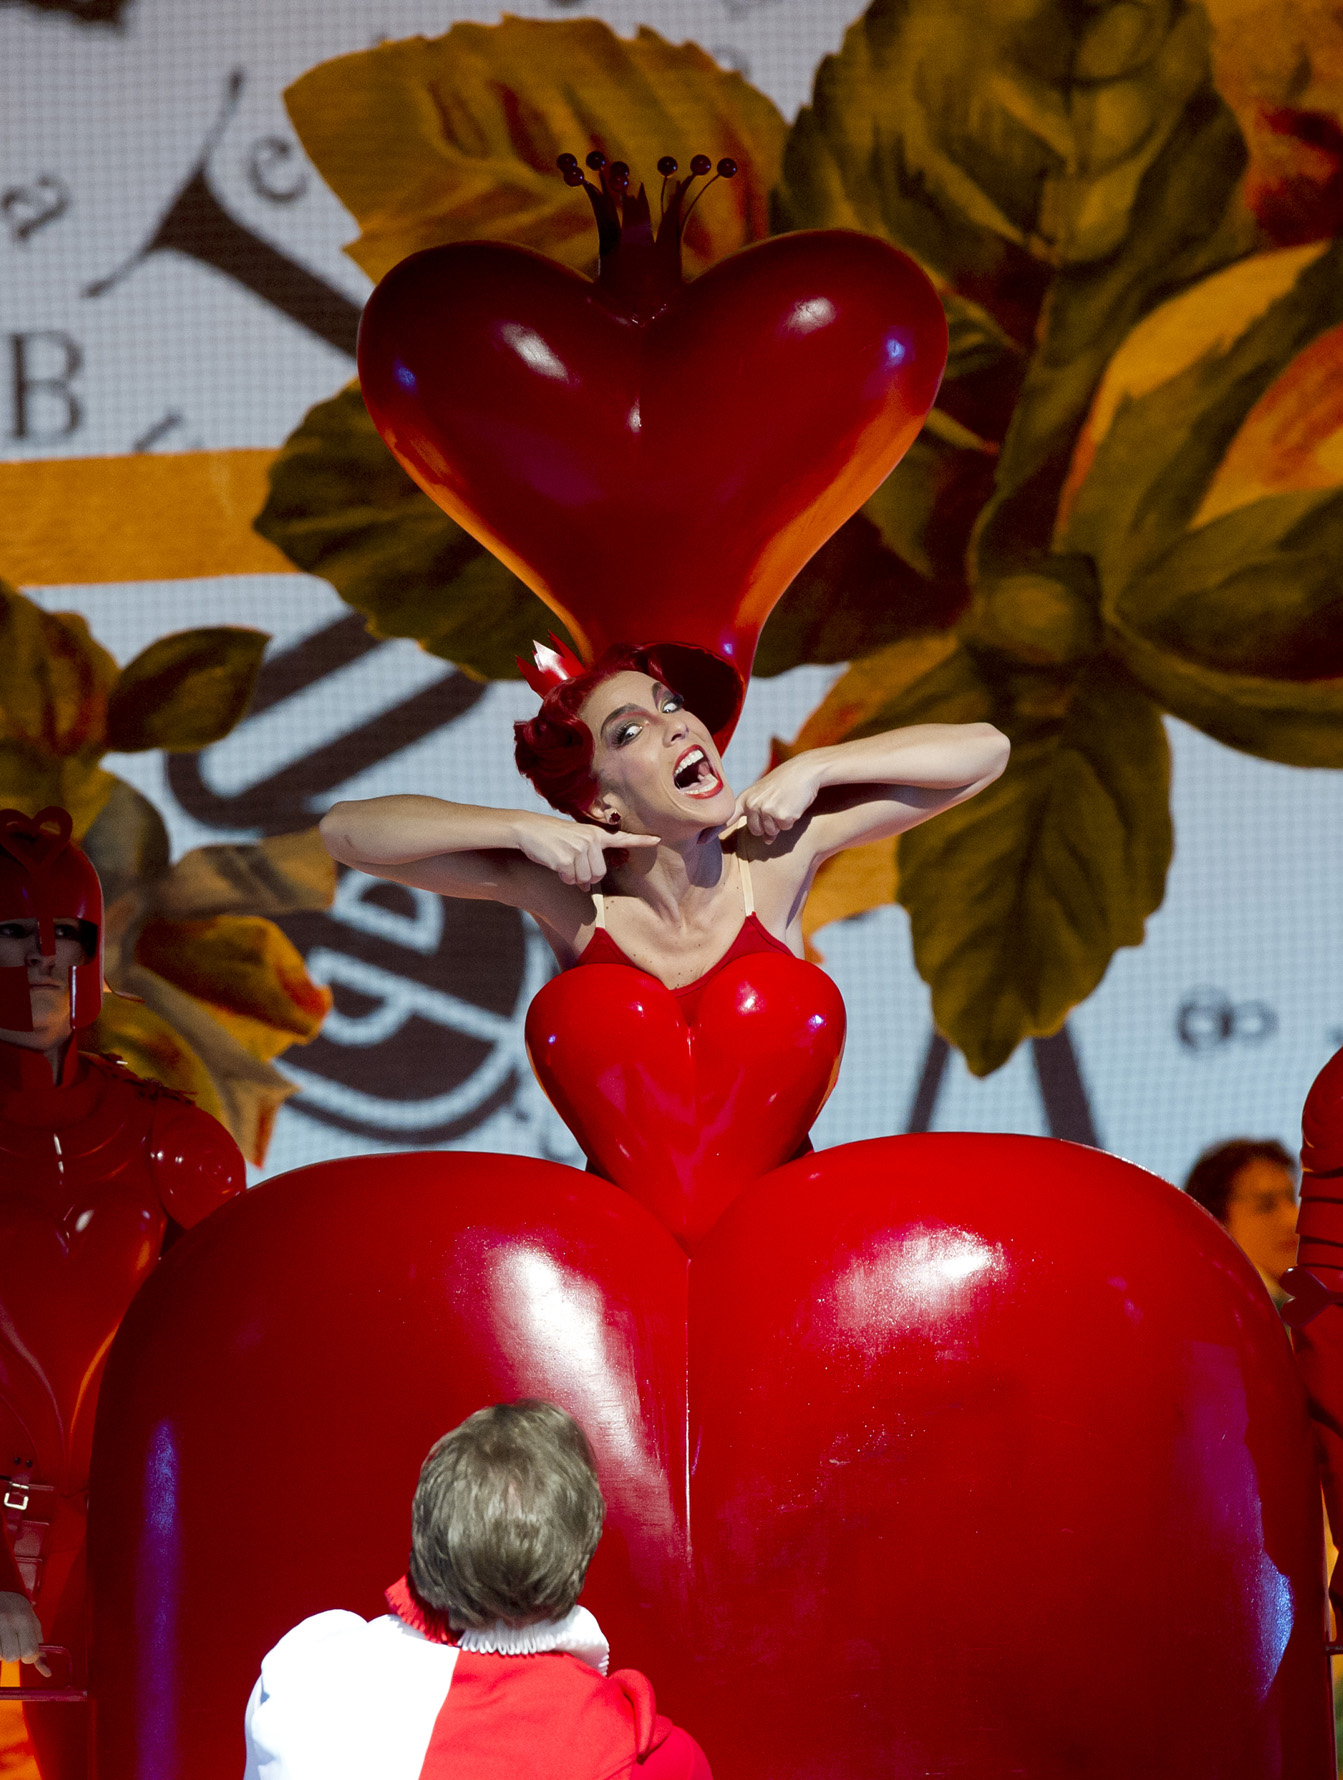 Larger than life Queen of Hearts!